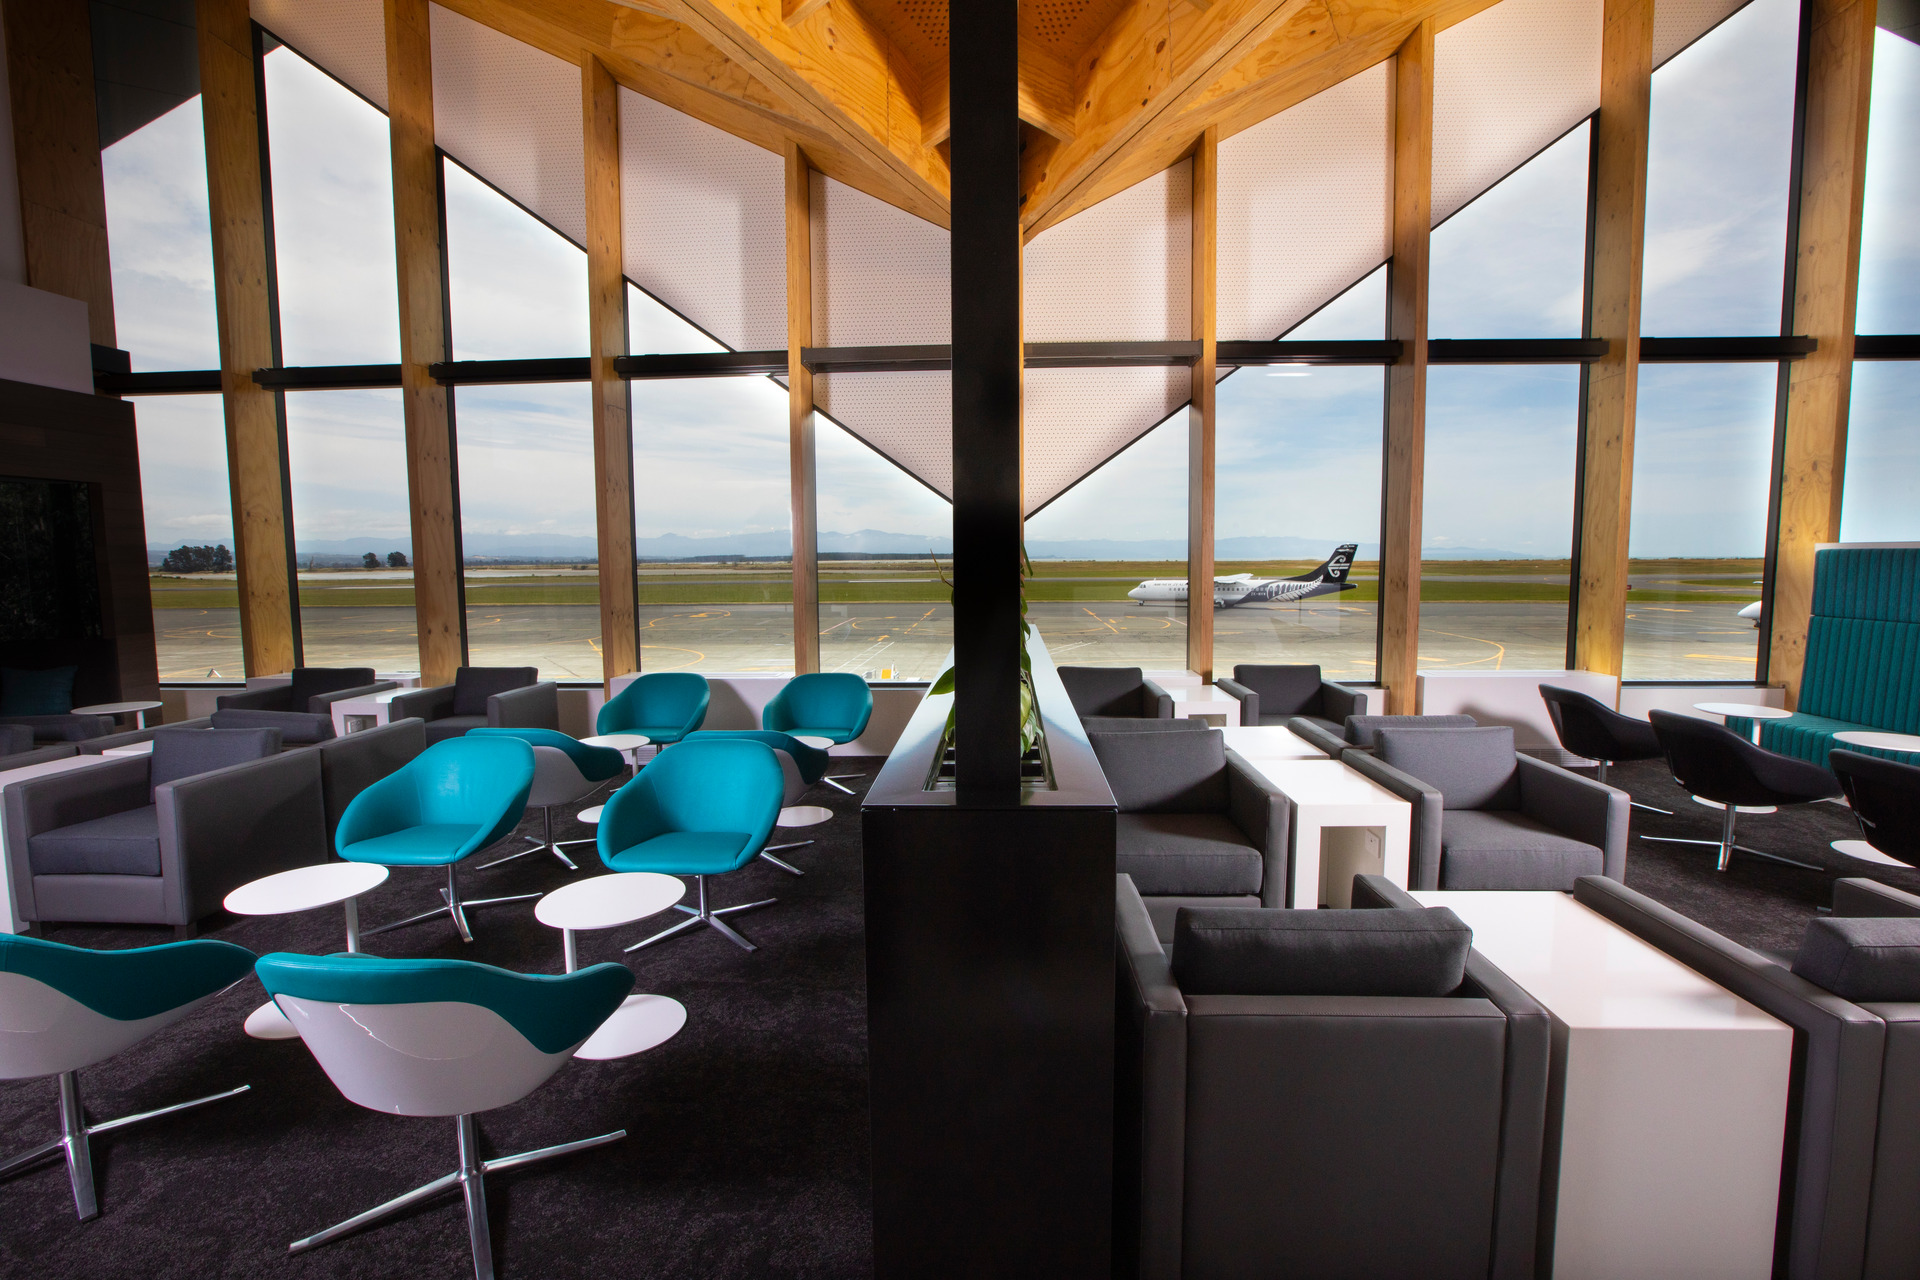 Air NZ opens latest lounge - complete with liquor licence